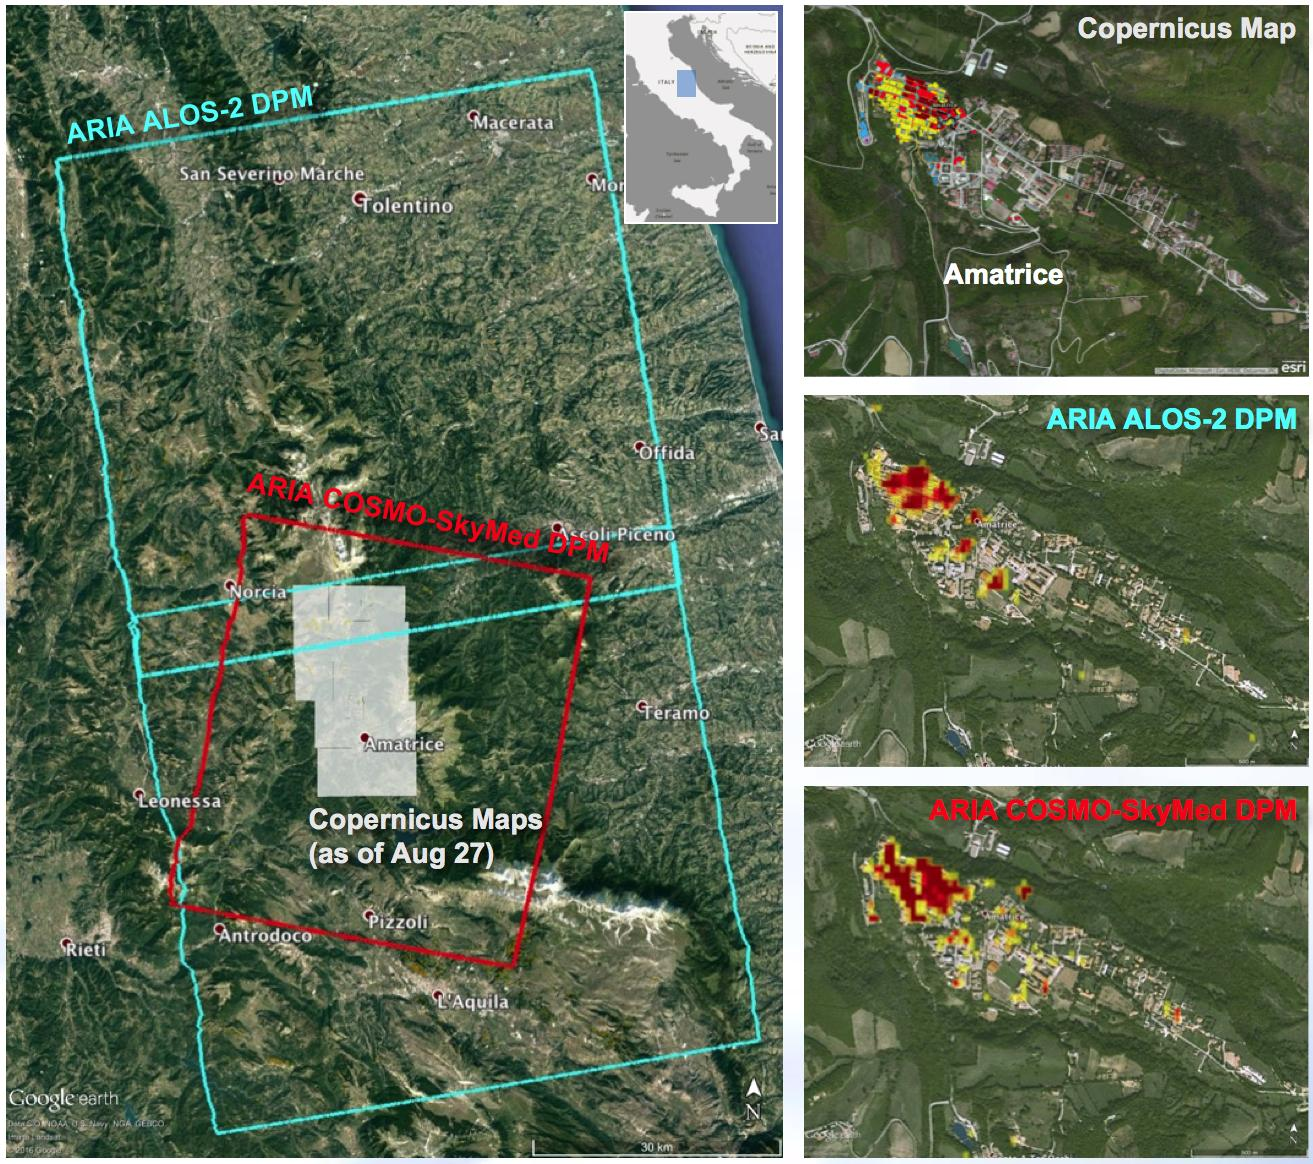 Nasa Produced Maps Help Gauge Italy Earthquake Damage